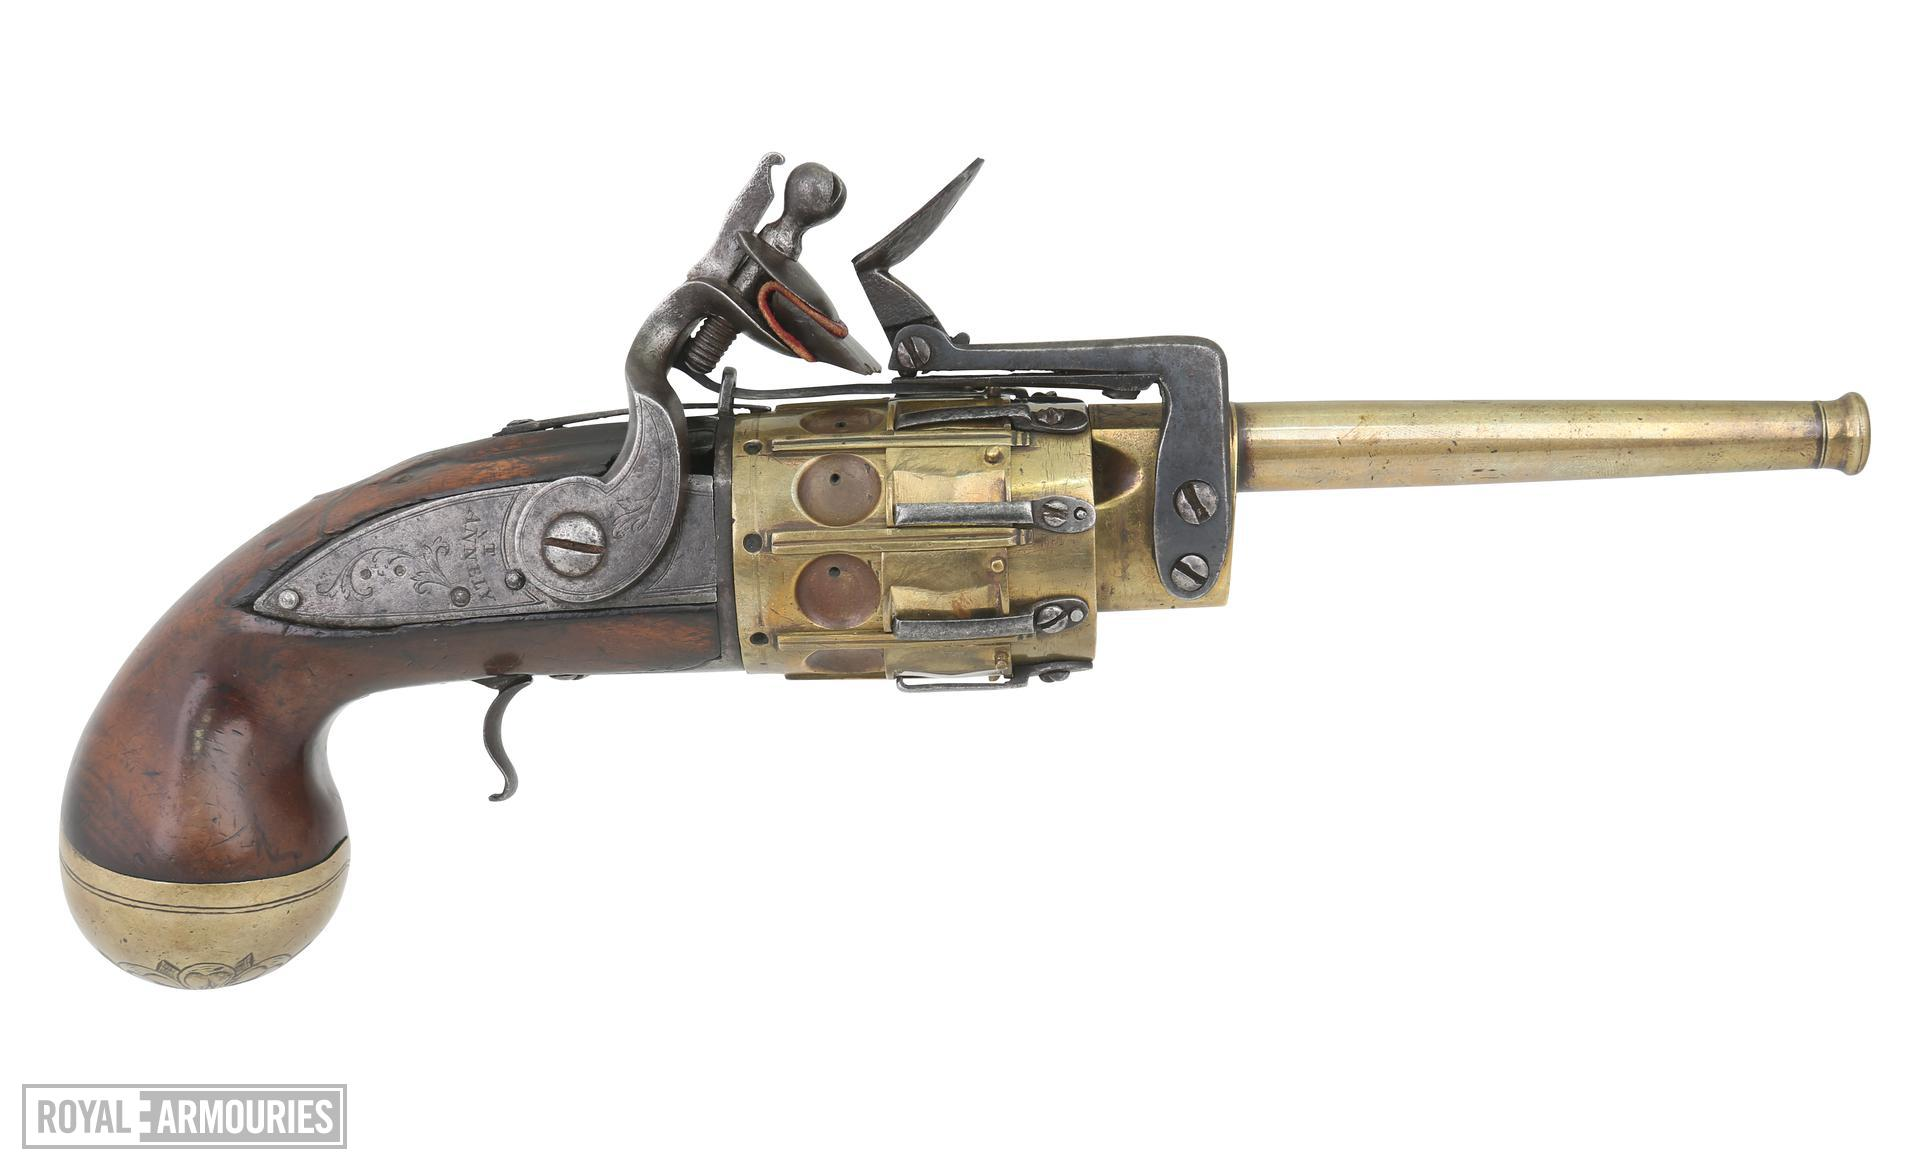 Snaphaunce revolver, Annely pattern, Britain, about 1700. XII.4745